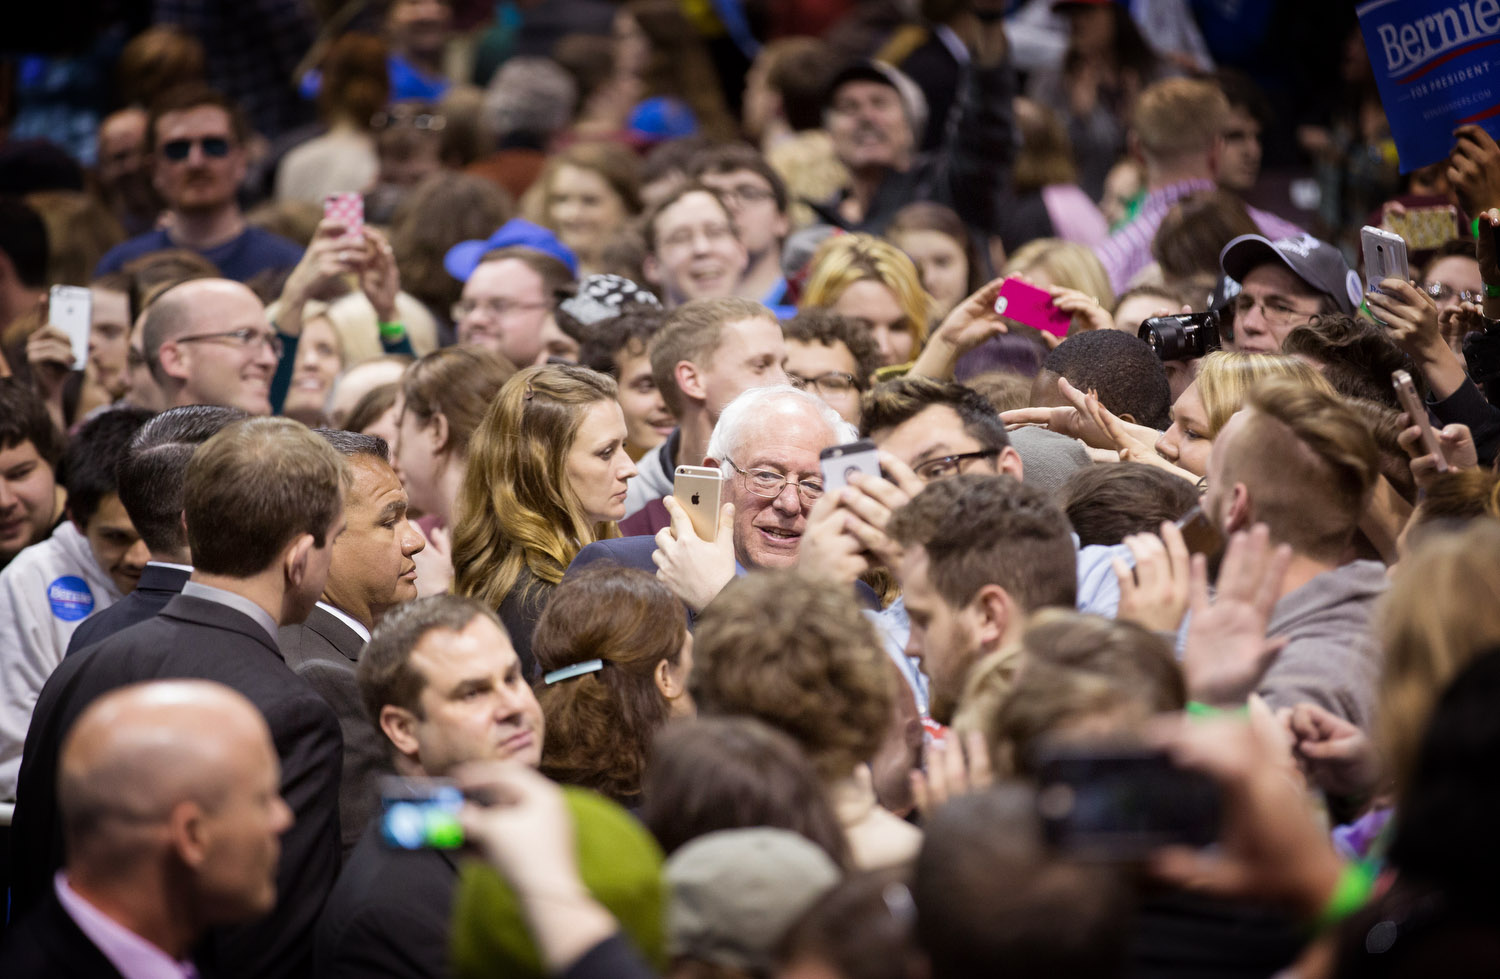 Democratic presidential candidate Sen. Bernie Sanders, I-Vt., greets supporters during a campaign rally at JQH Arena at Missouri State University in Springfield, Mo., Saturday, March 12, 2016.